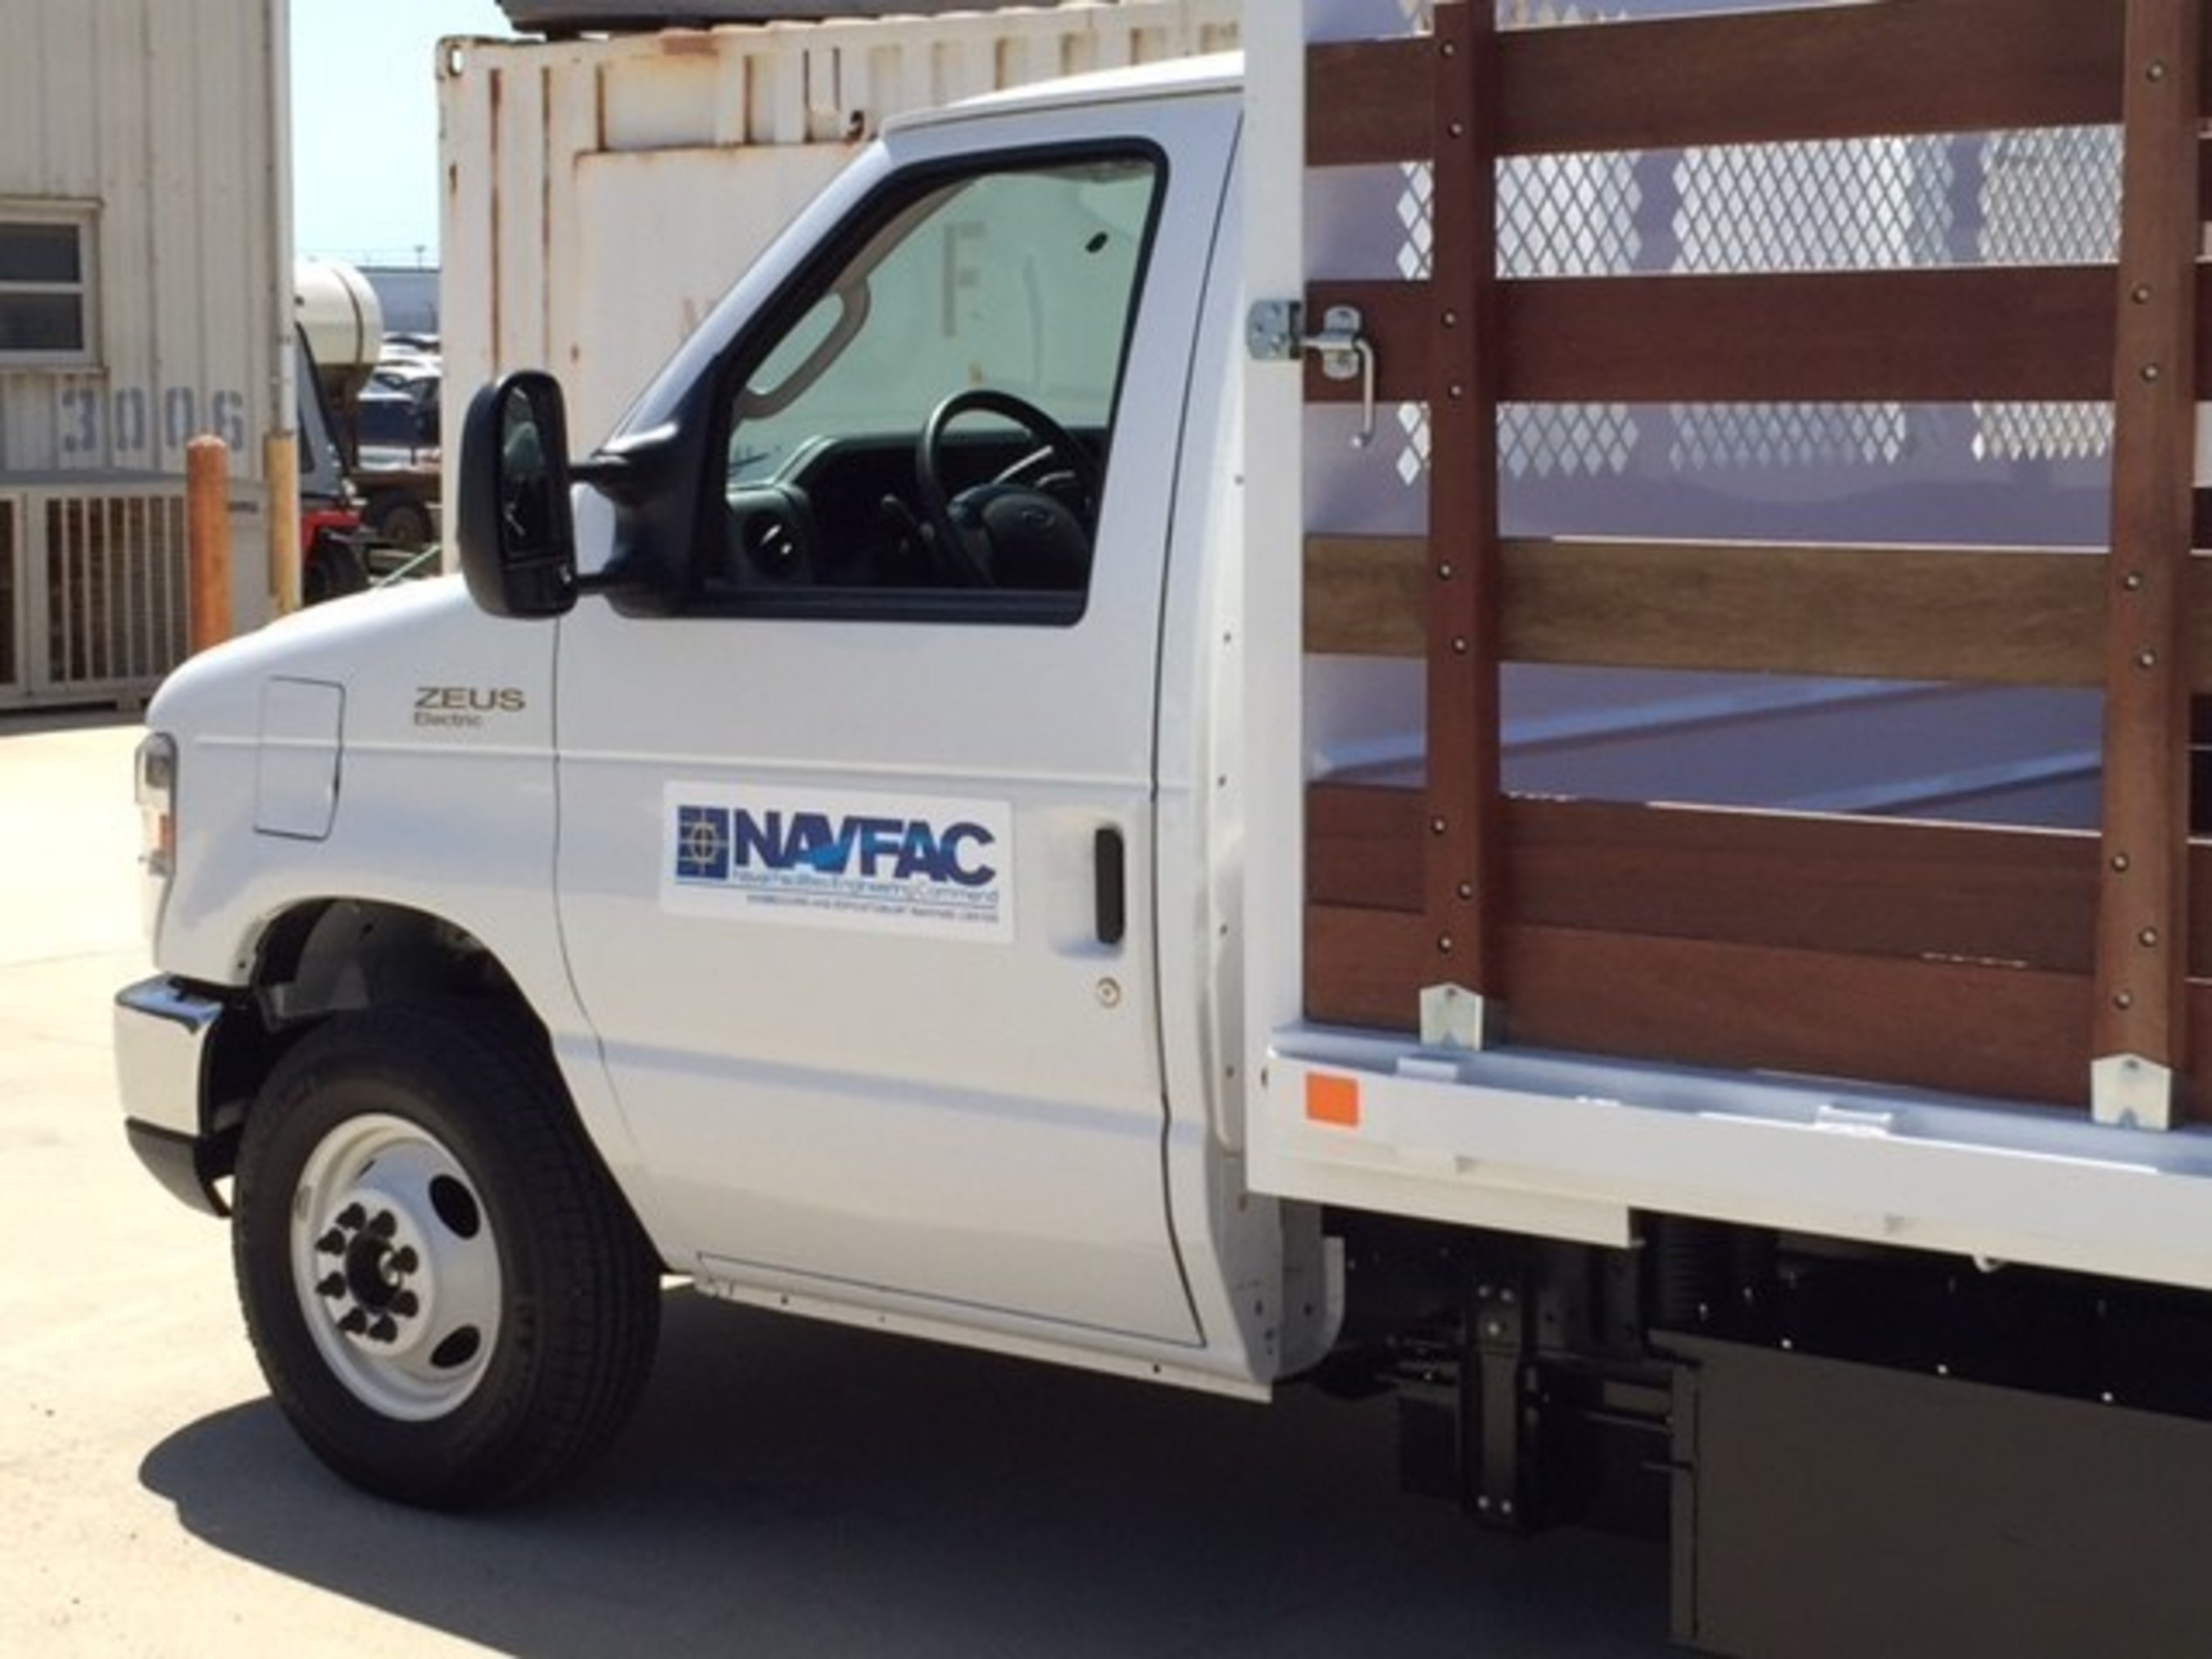 Phoenix Cars is supplying its electric flatbed trucks to the US NAVY.